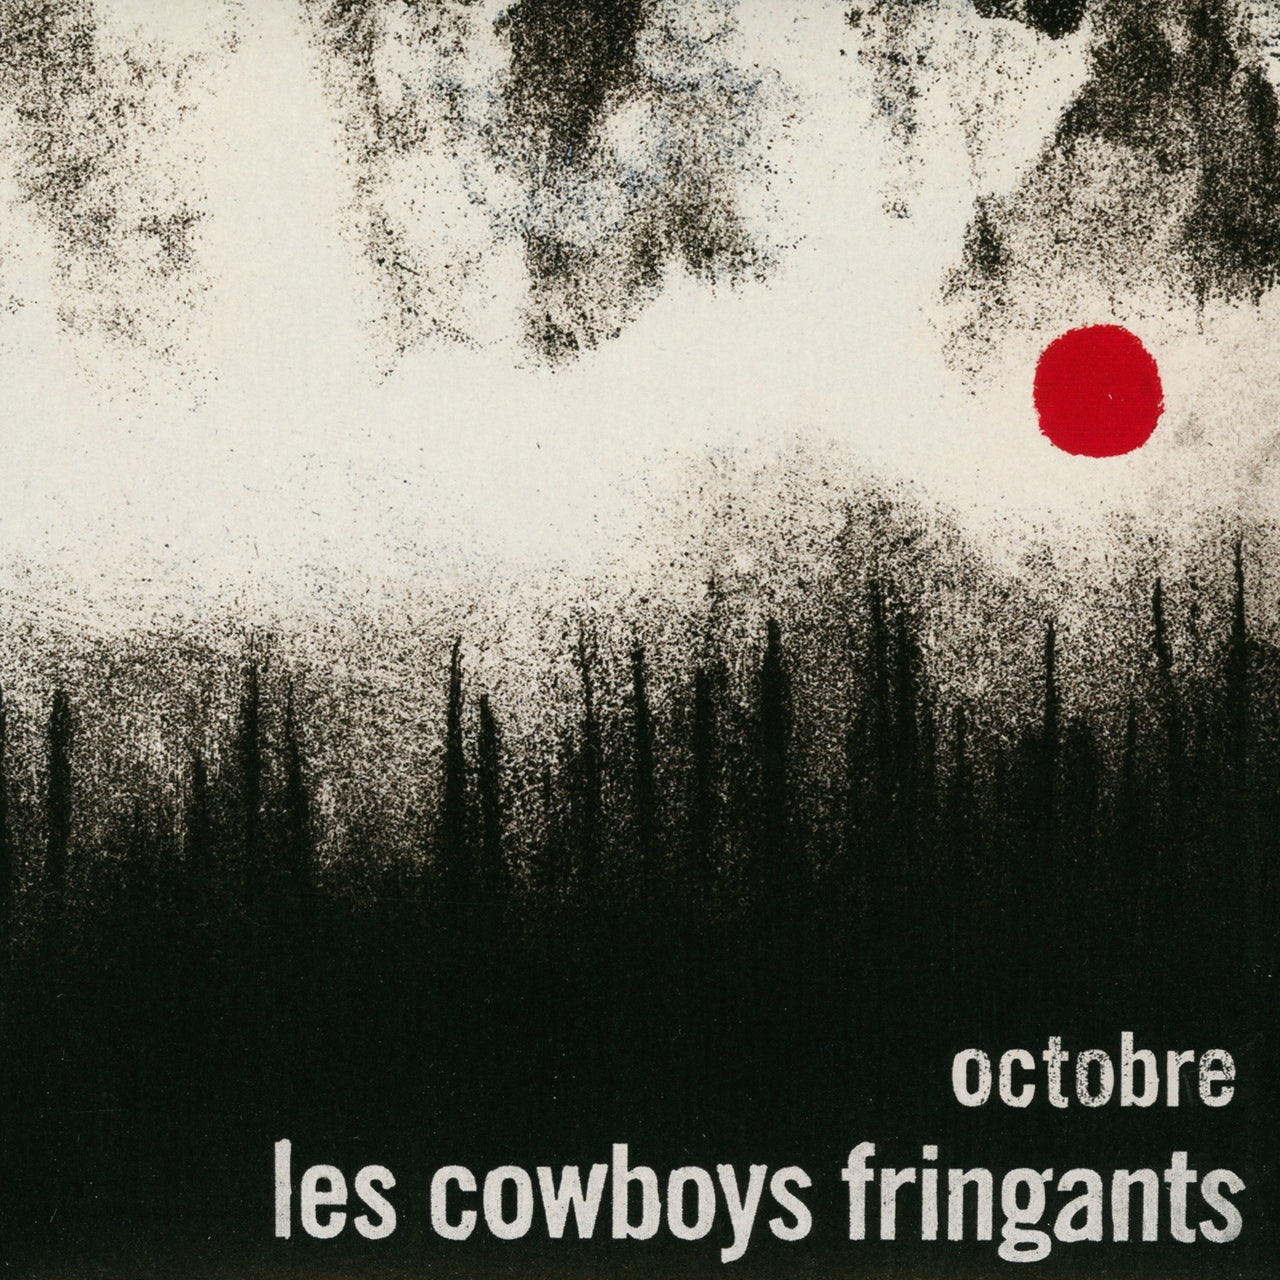 Cowboys Fringants (Les) : Octobre  CD